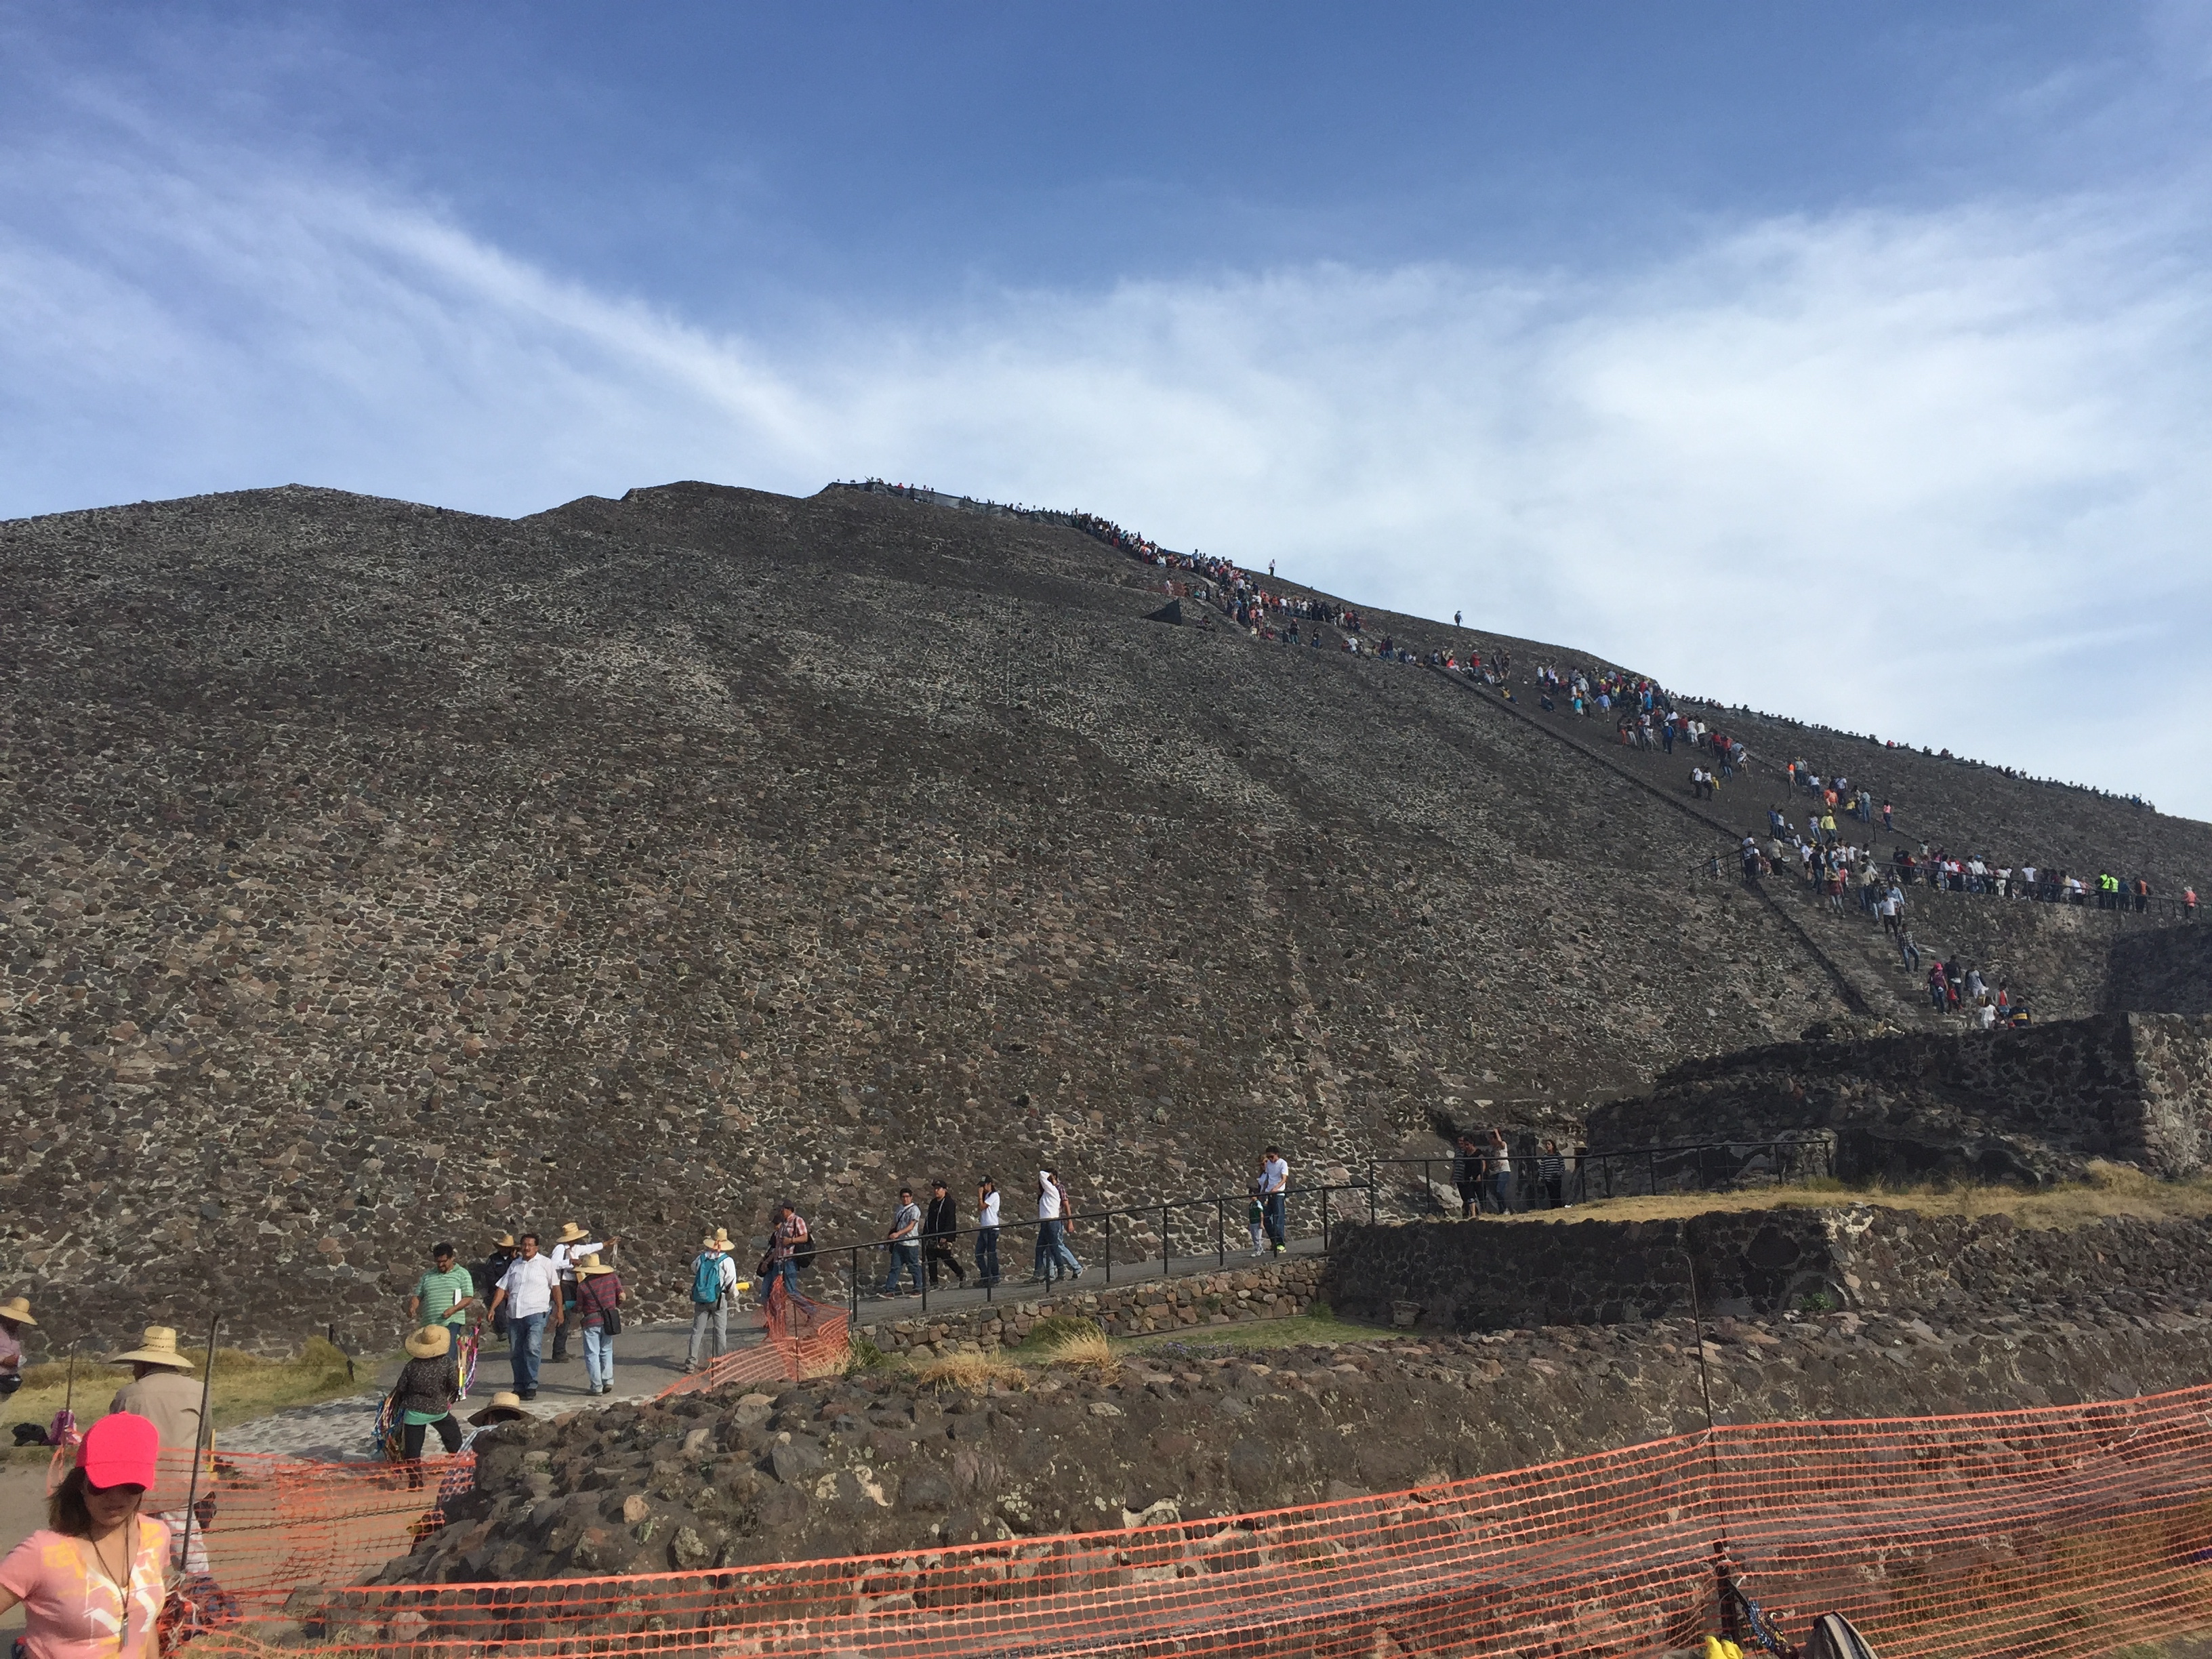 The base of the pyramid of the sun in Teotihuacan, mexico.